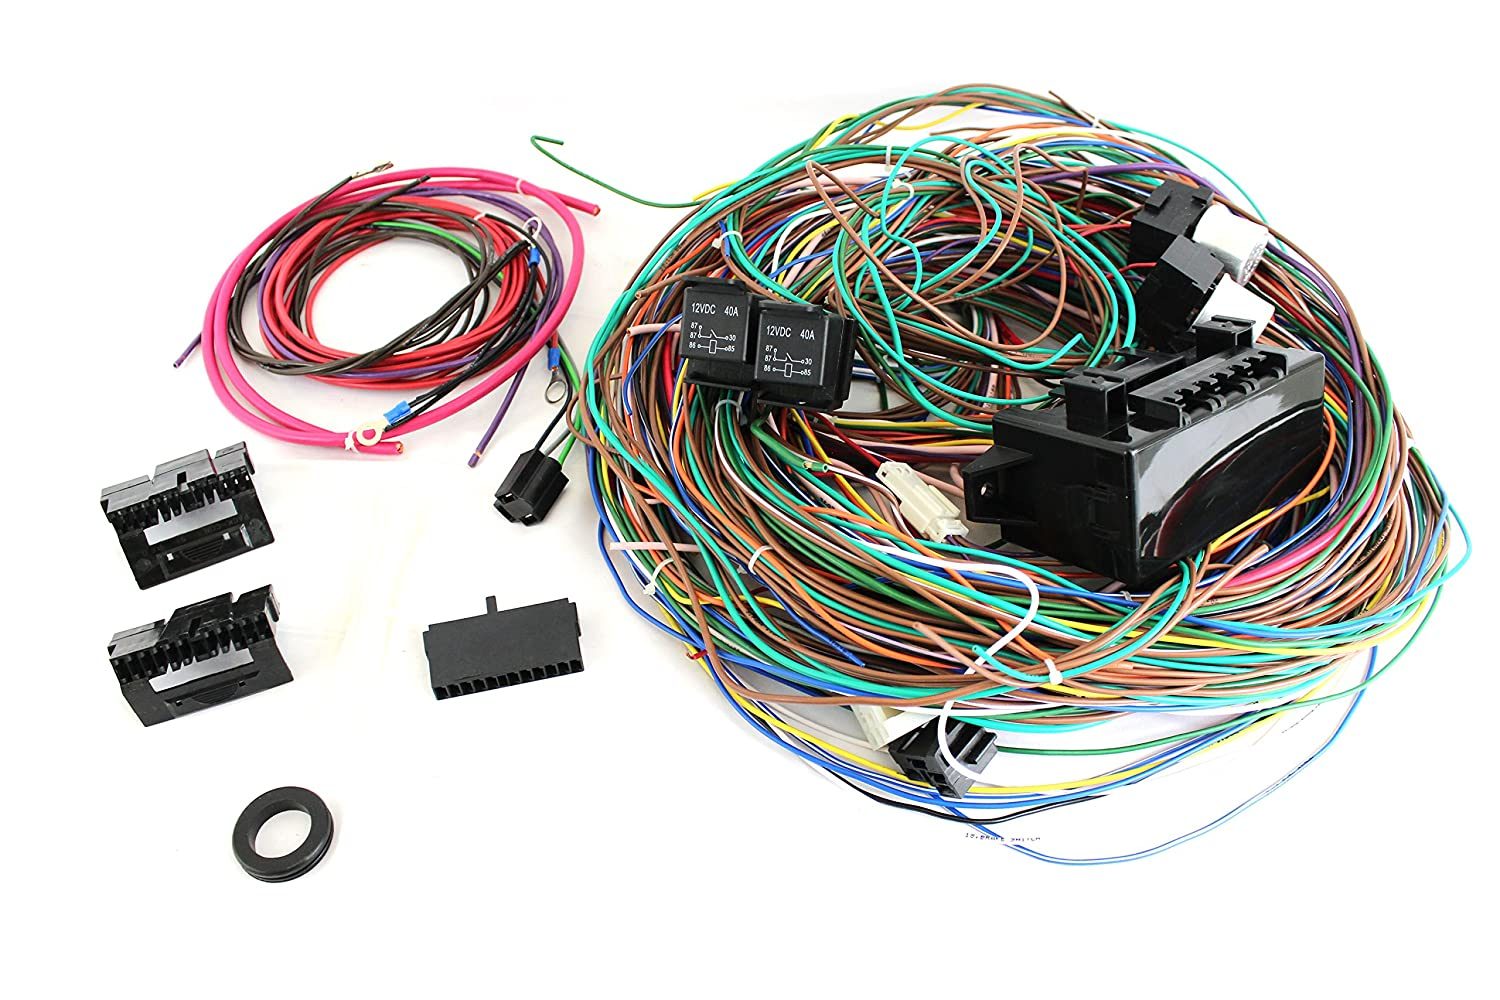 91YoamXFx2L._SL1500_ amazon com 12v 24 circuit 15 fuse street hot rat rod wiring street rod wiring harness at mifinder.co